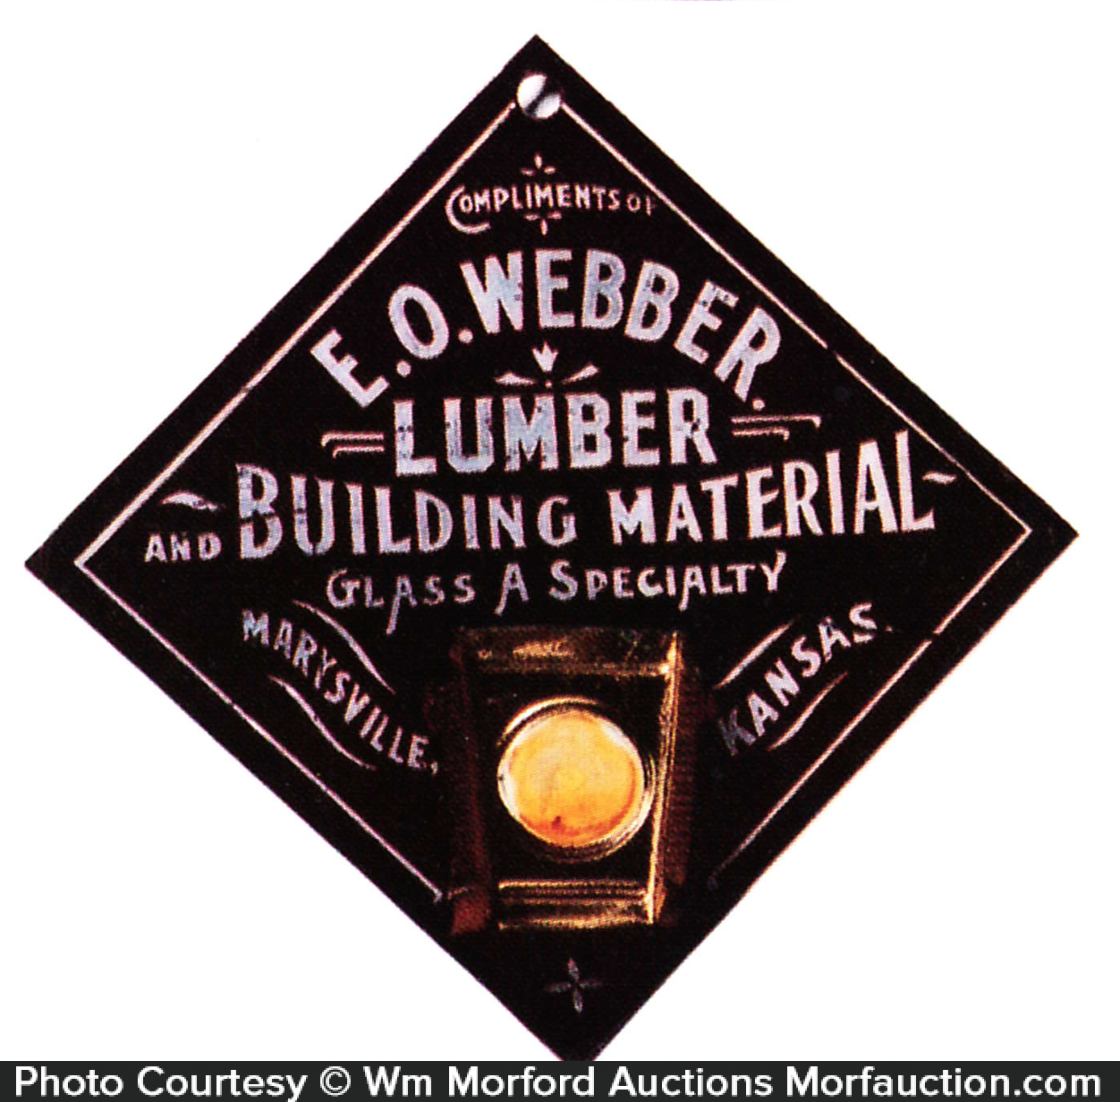 Webber Lumber Match Holder